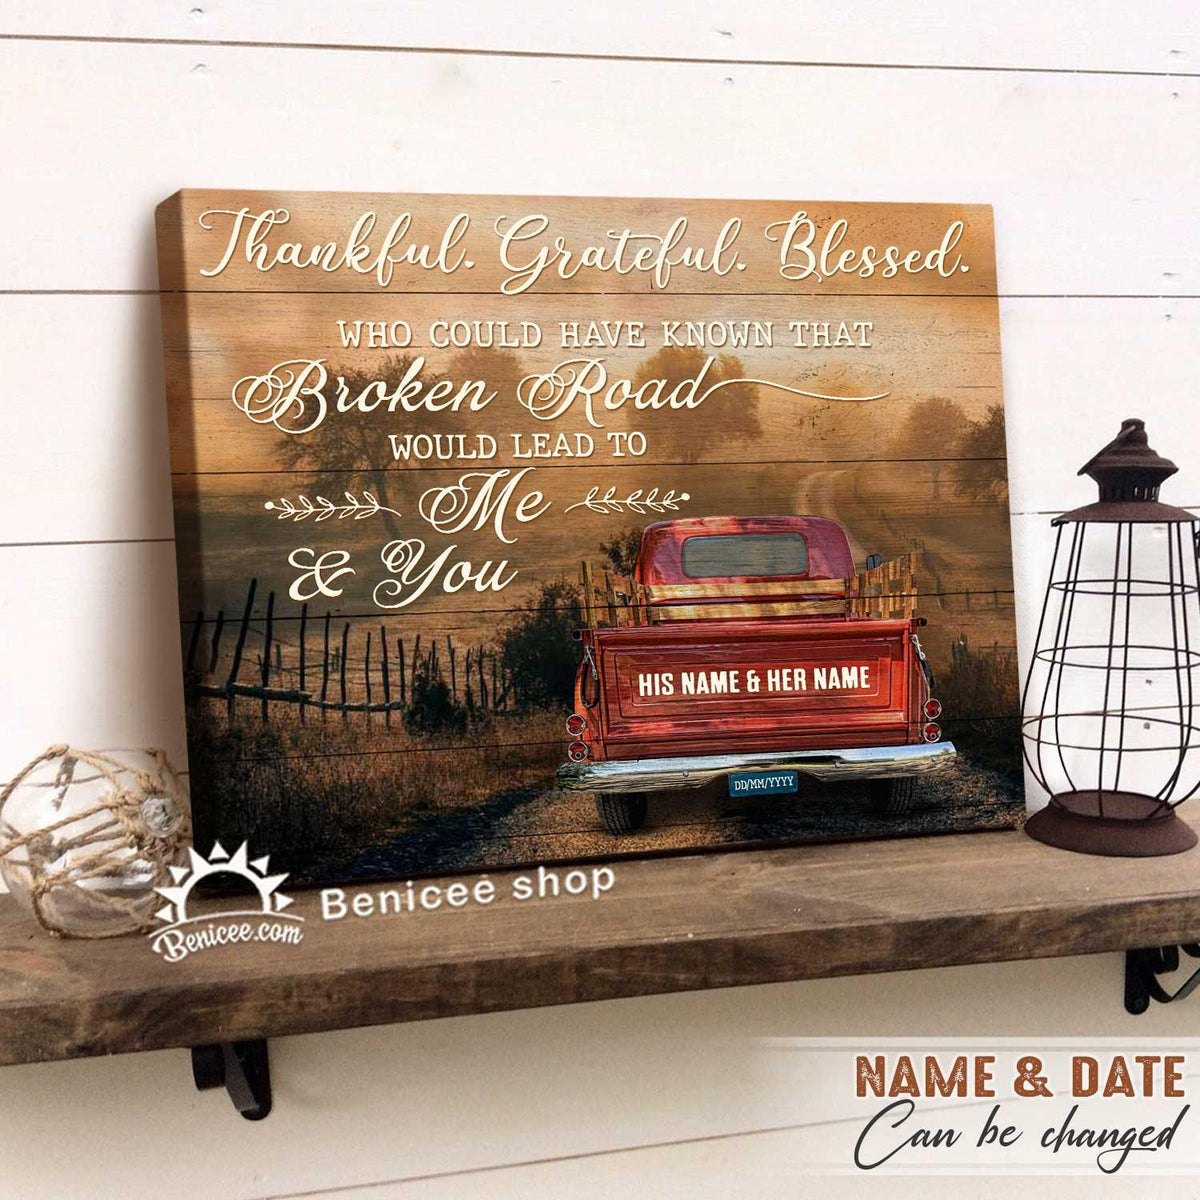 Personalized Farmhouse Wall Art Canvas God Broken Road Would Lead To Me And You Top 10 BENICEE